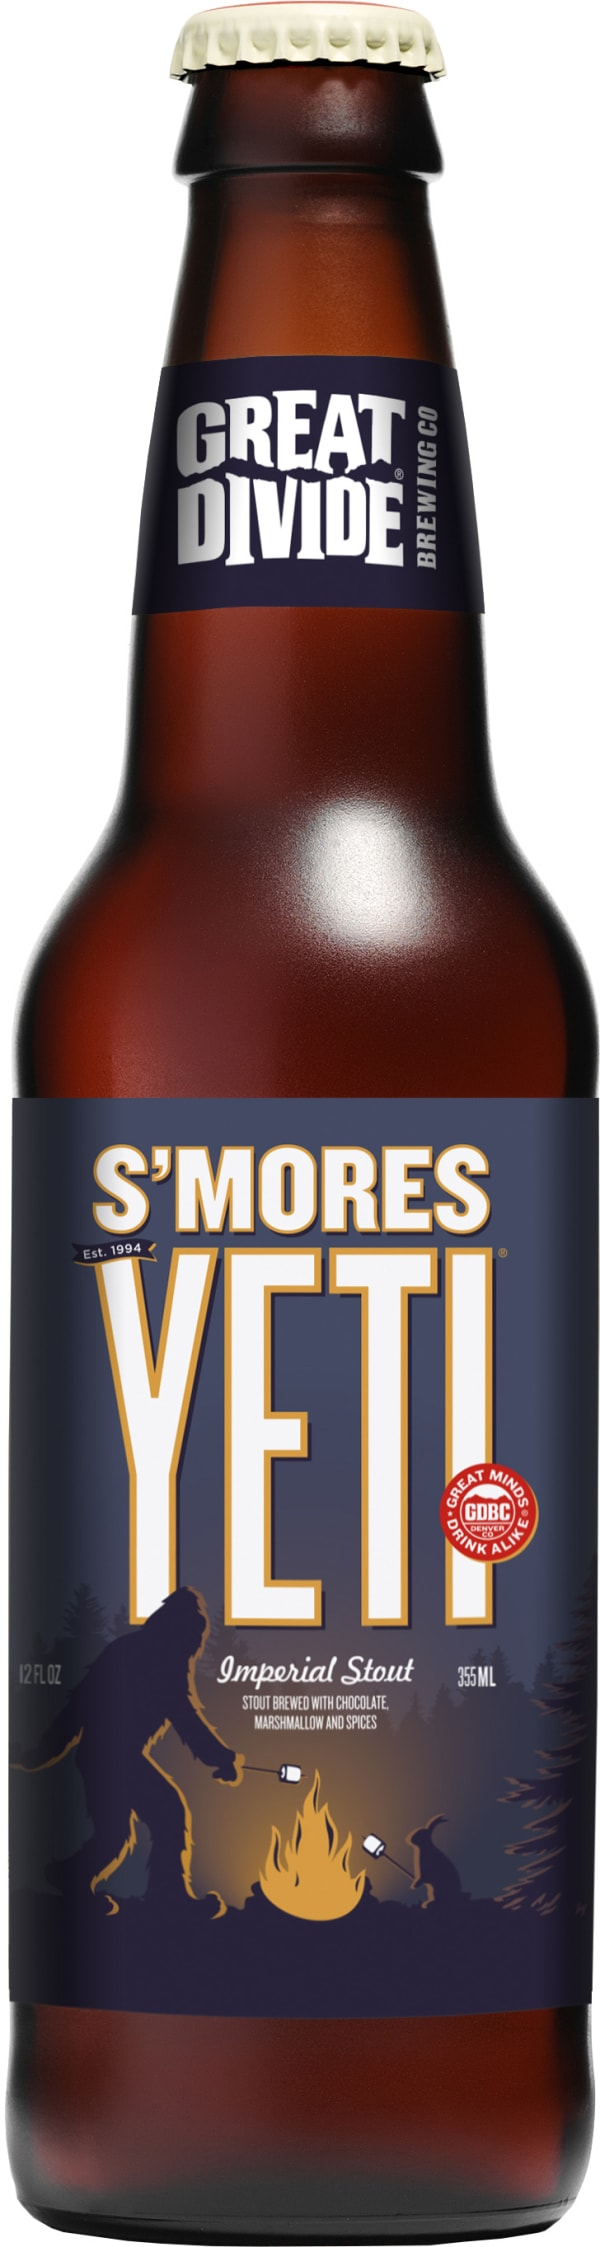 Great Divide S'mores Yeti Imperial Stout